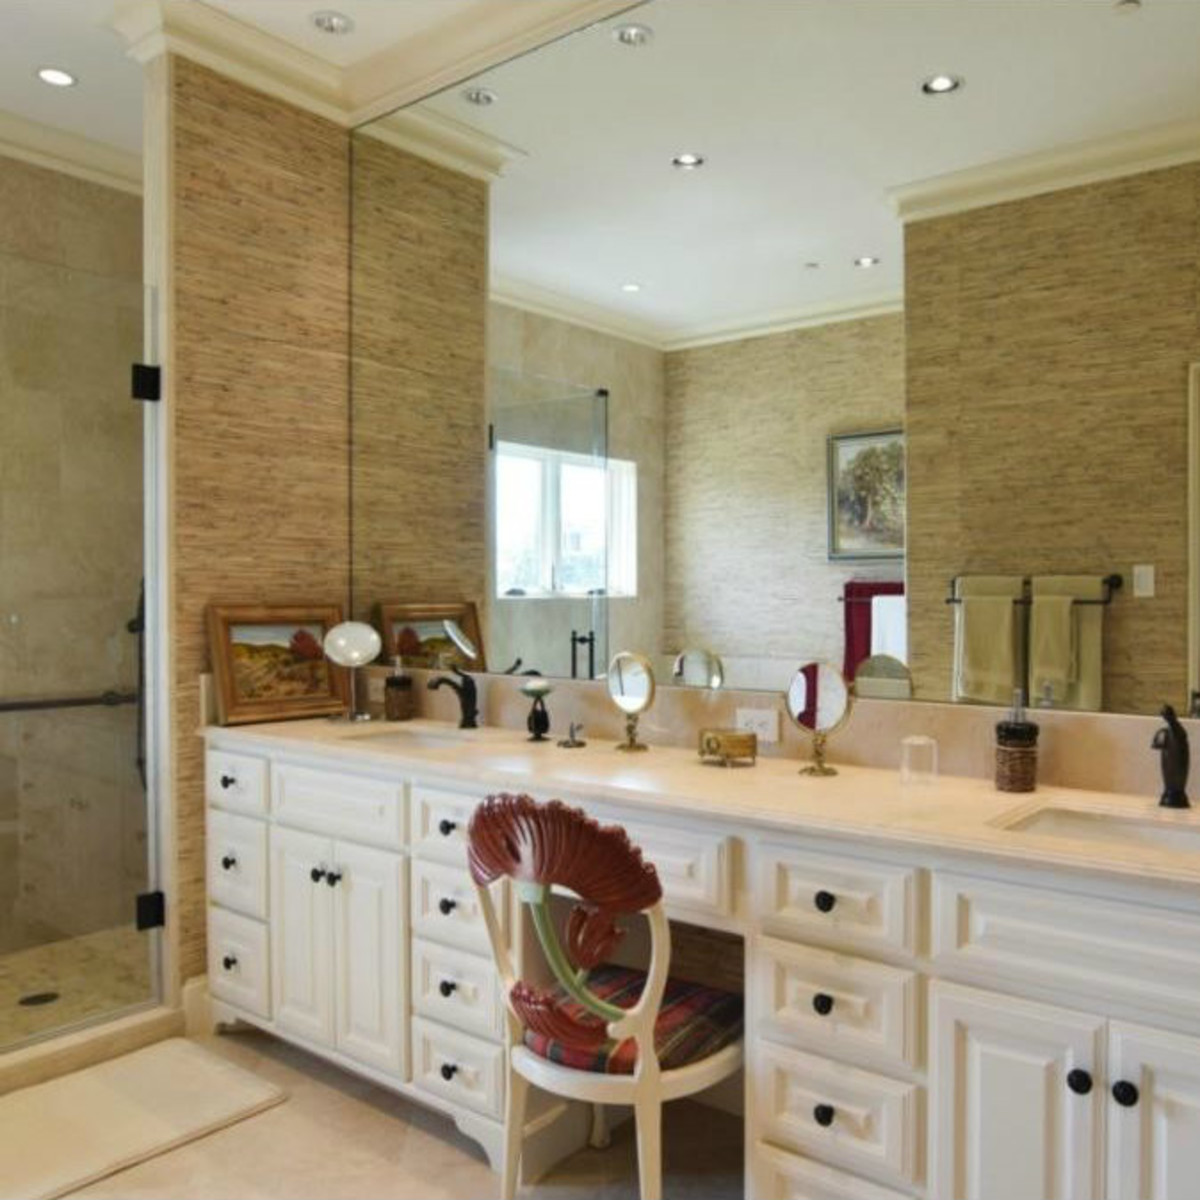 Master bath vanities at 12258 Creek Forest Dr. in Dallas